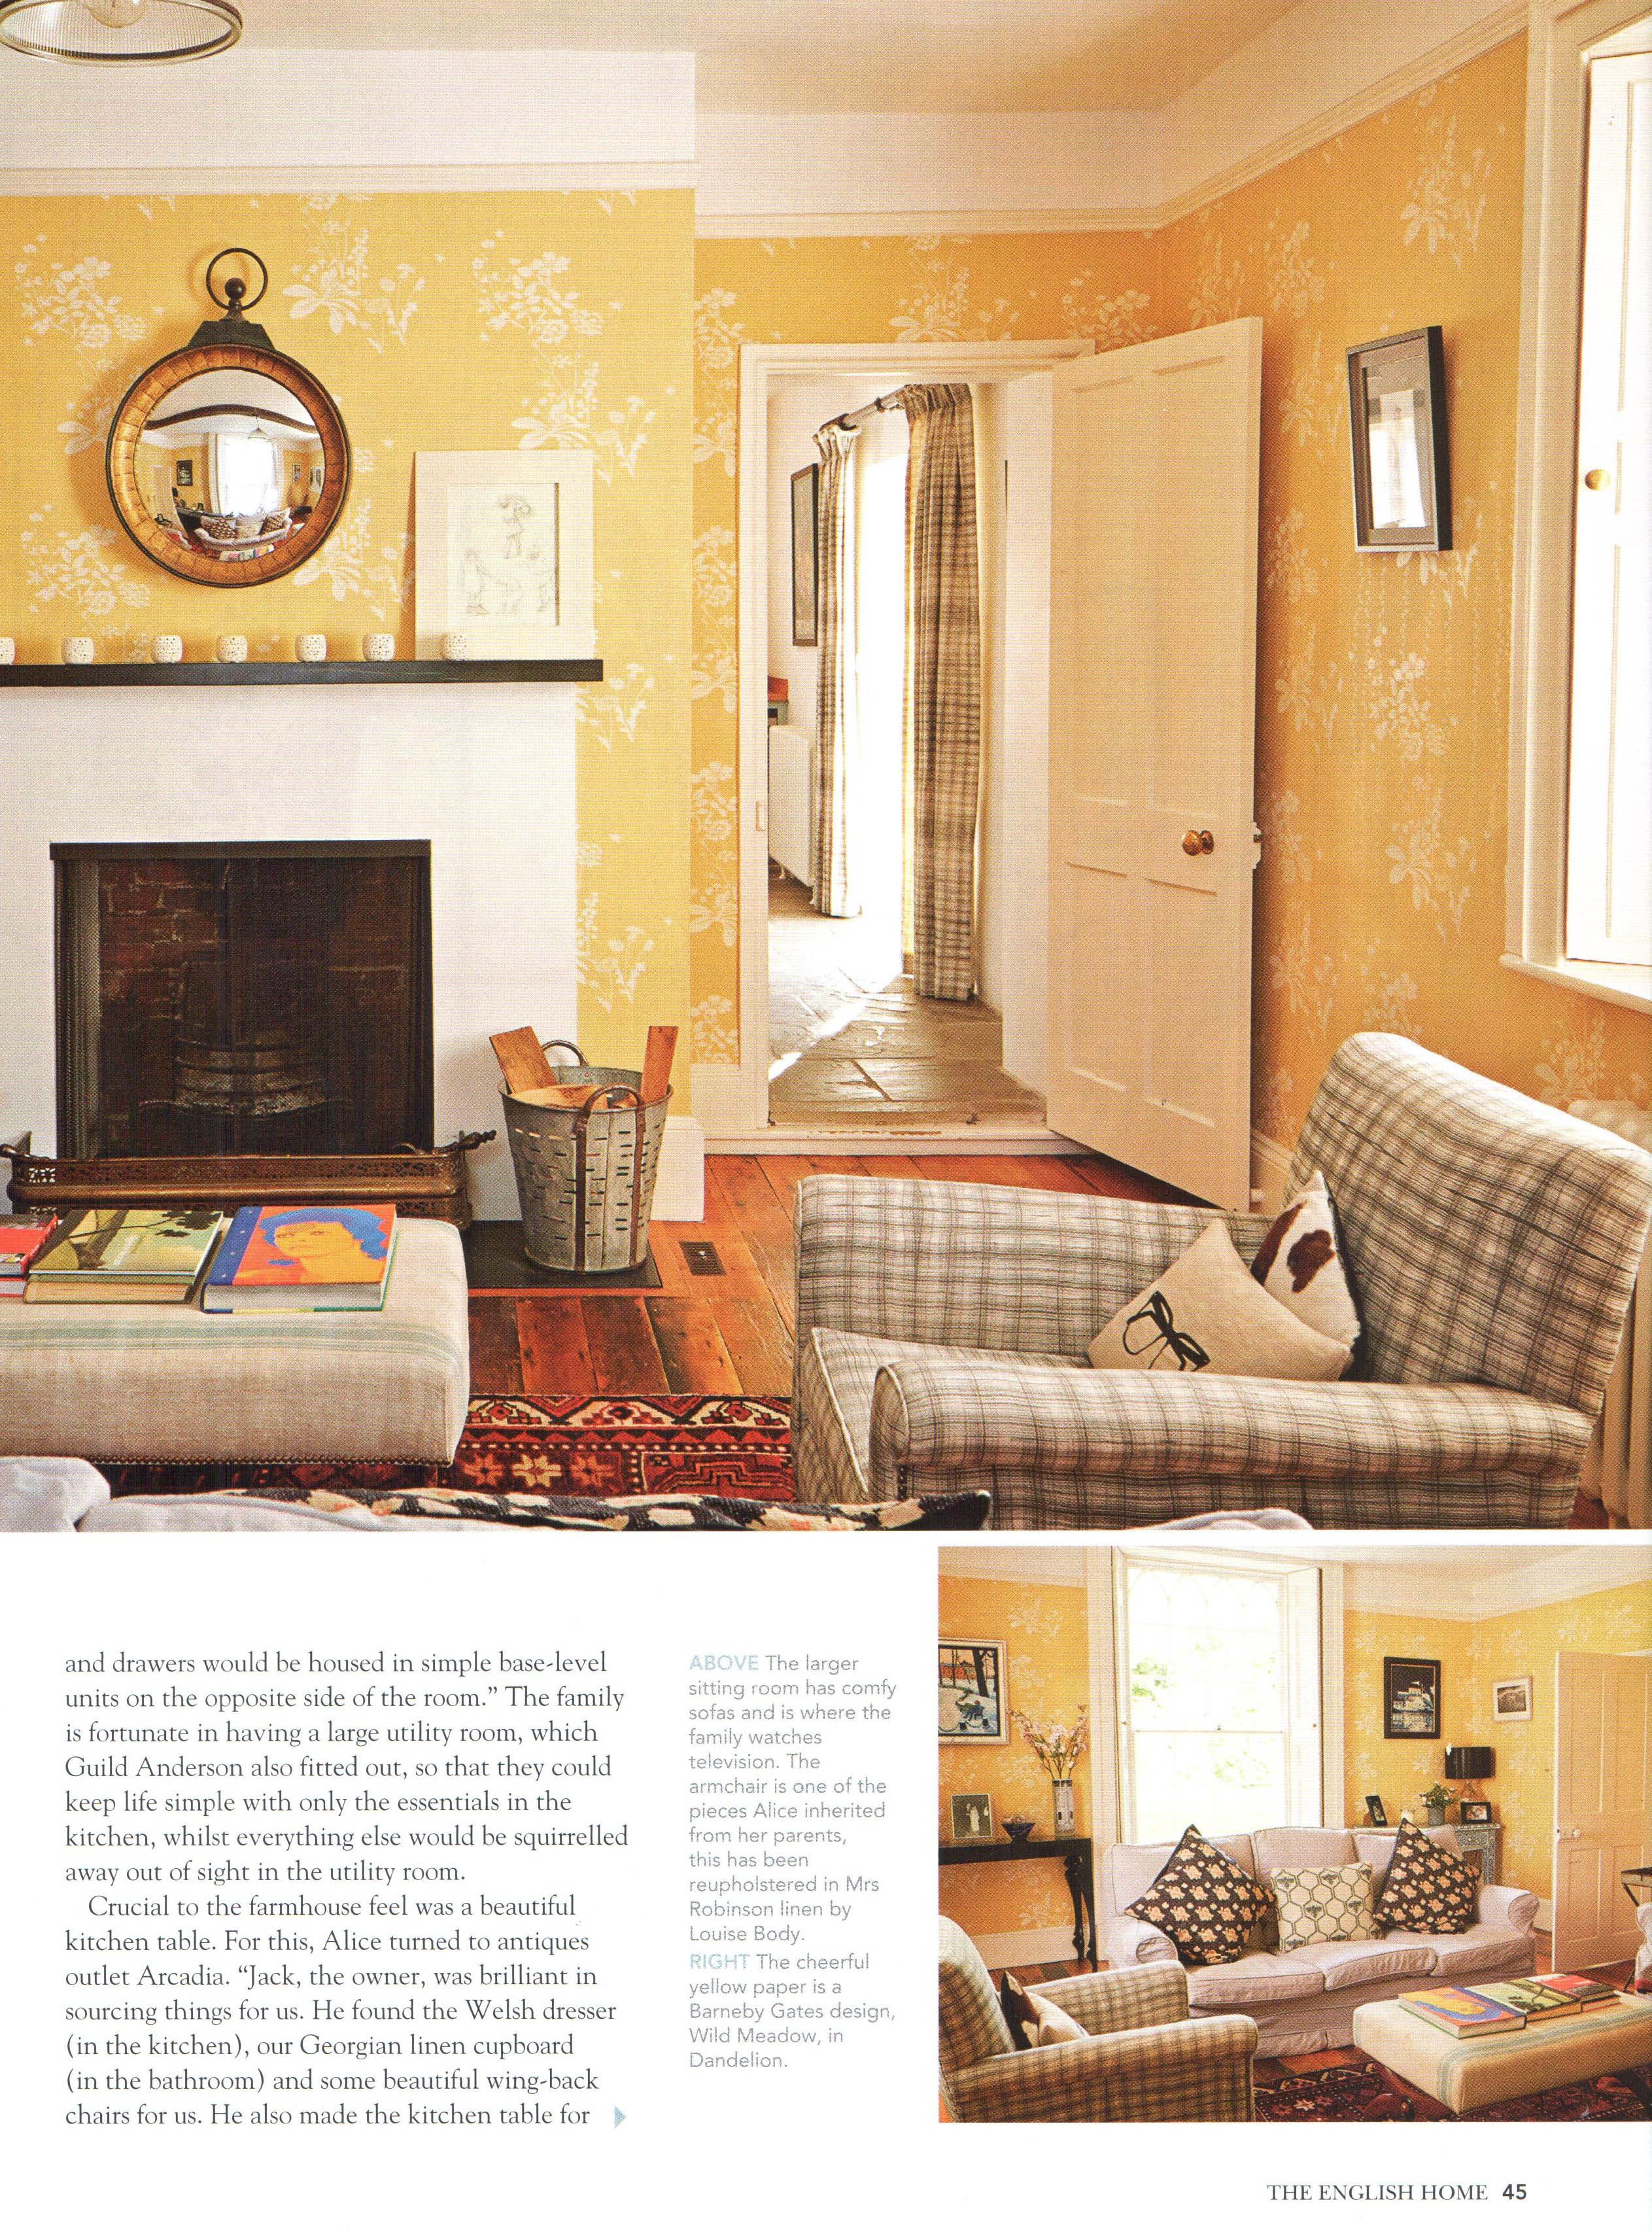 The English Home - May 2014 - Article, page 4